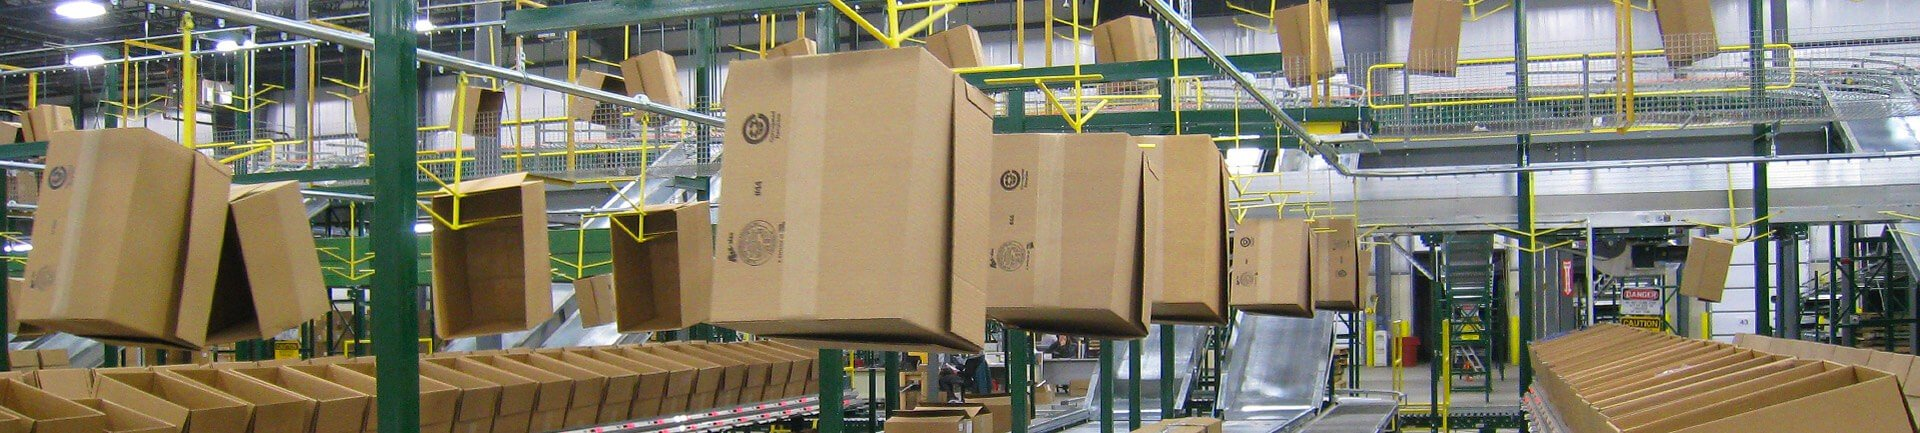 Overhead conveyor for empty carton delivery in split case picking operations.